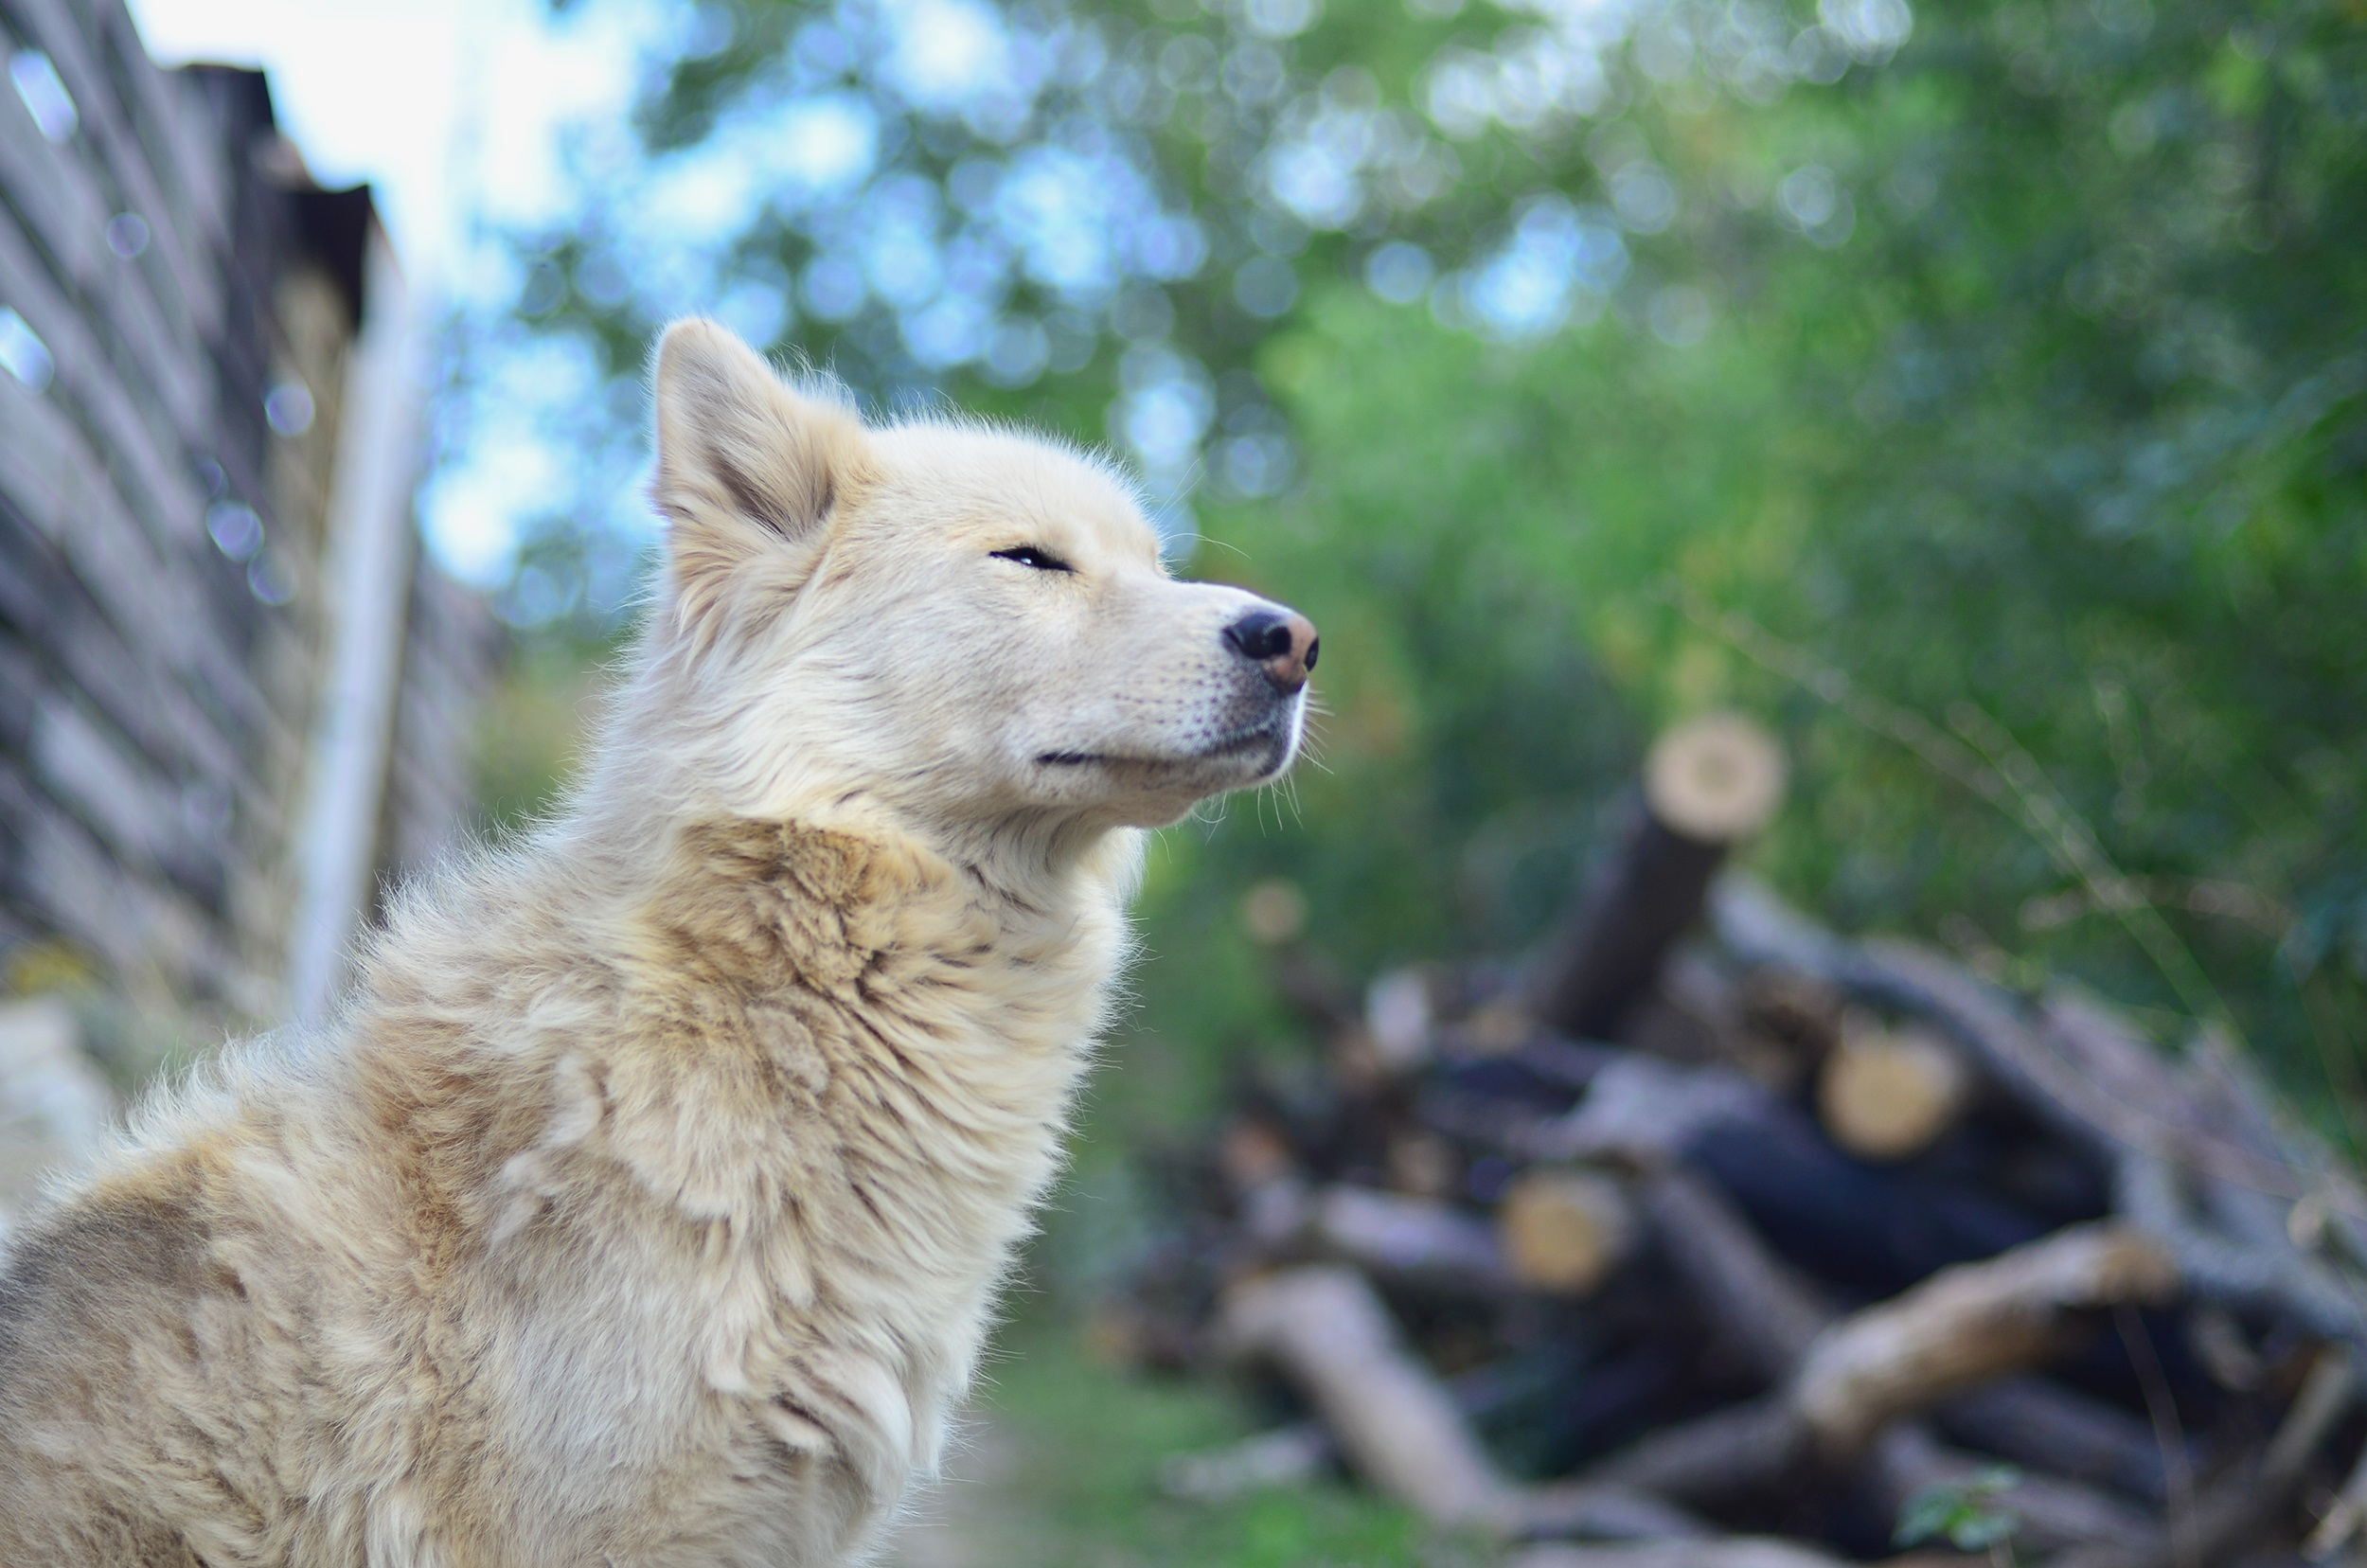 Samusky Mixed Dog Breed Pictures